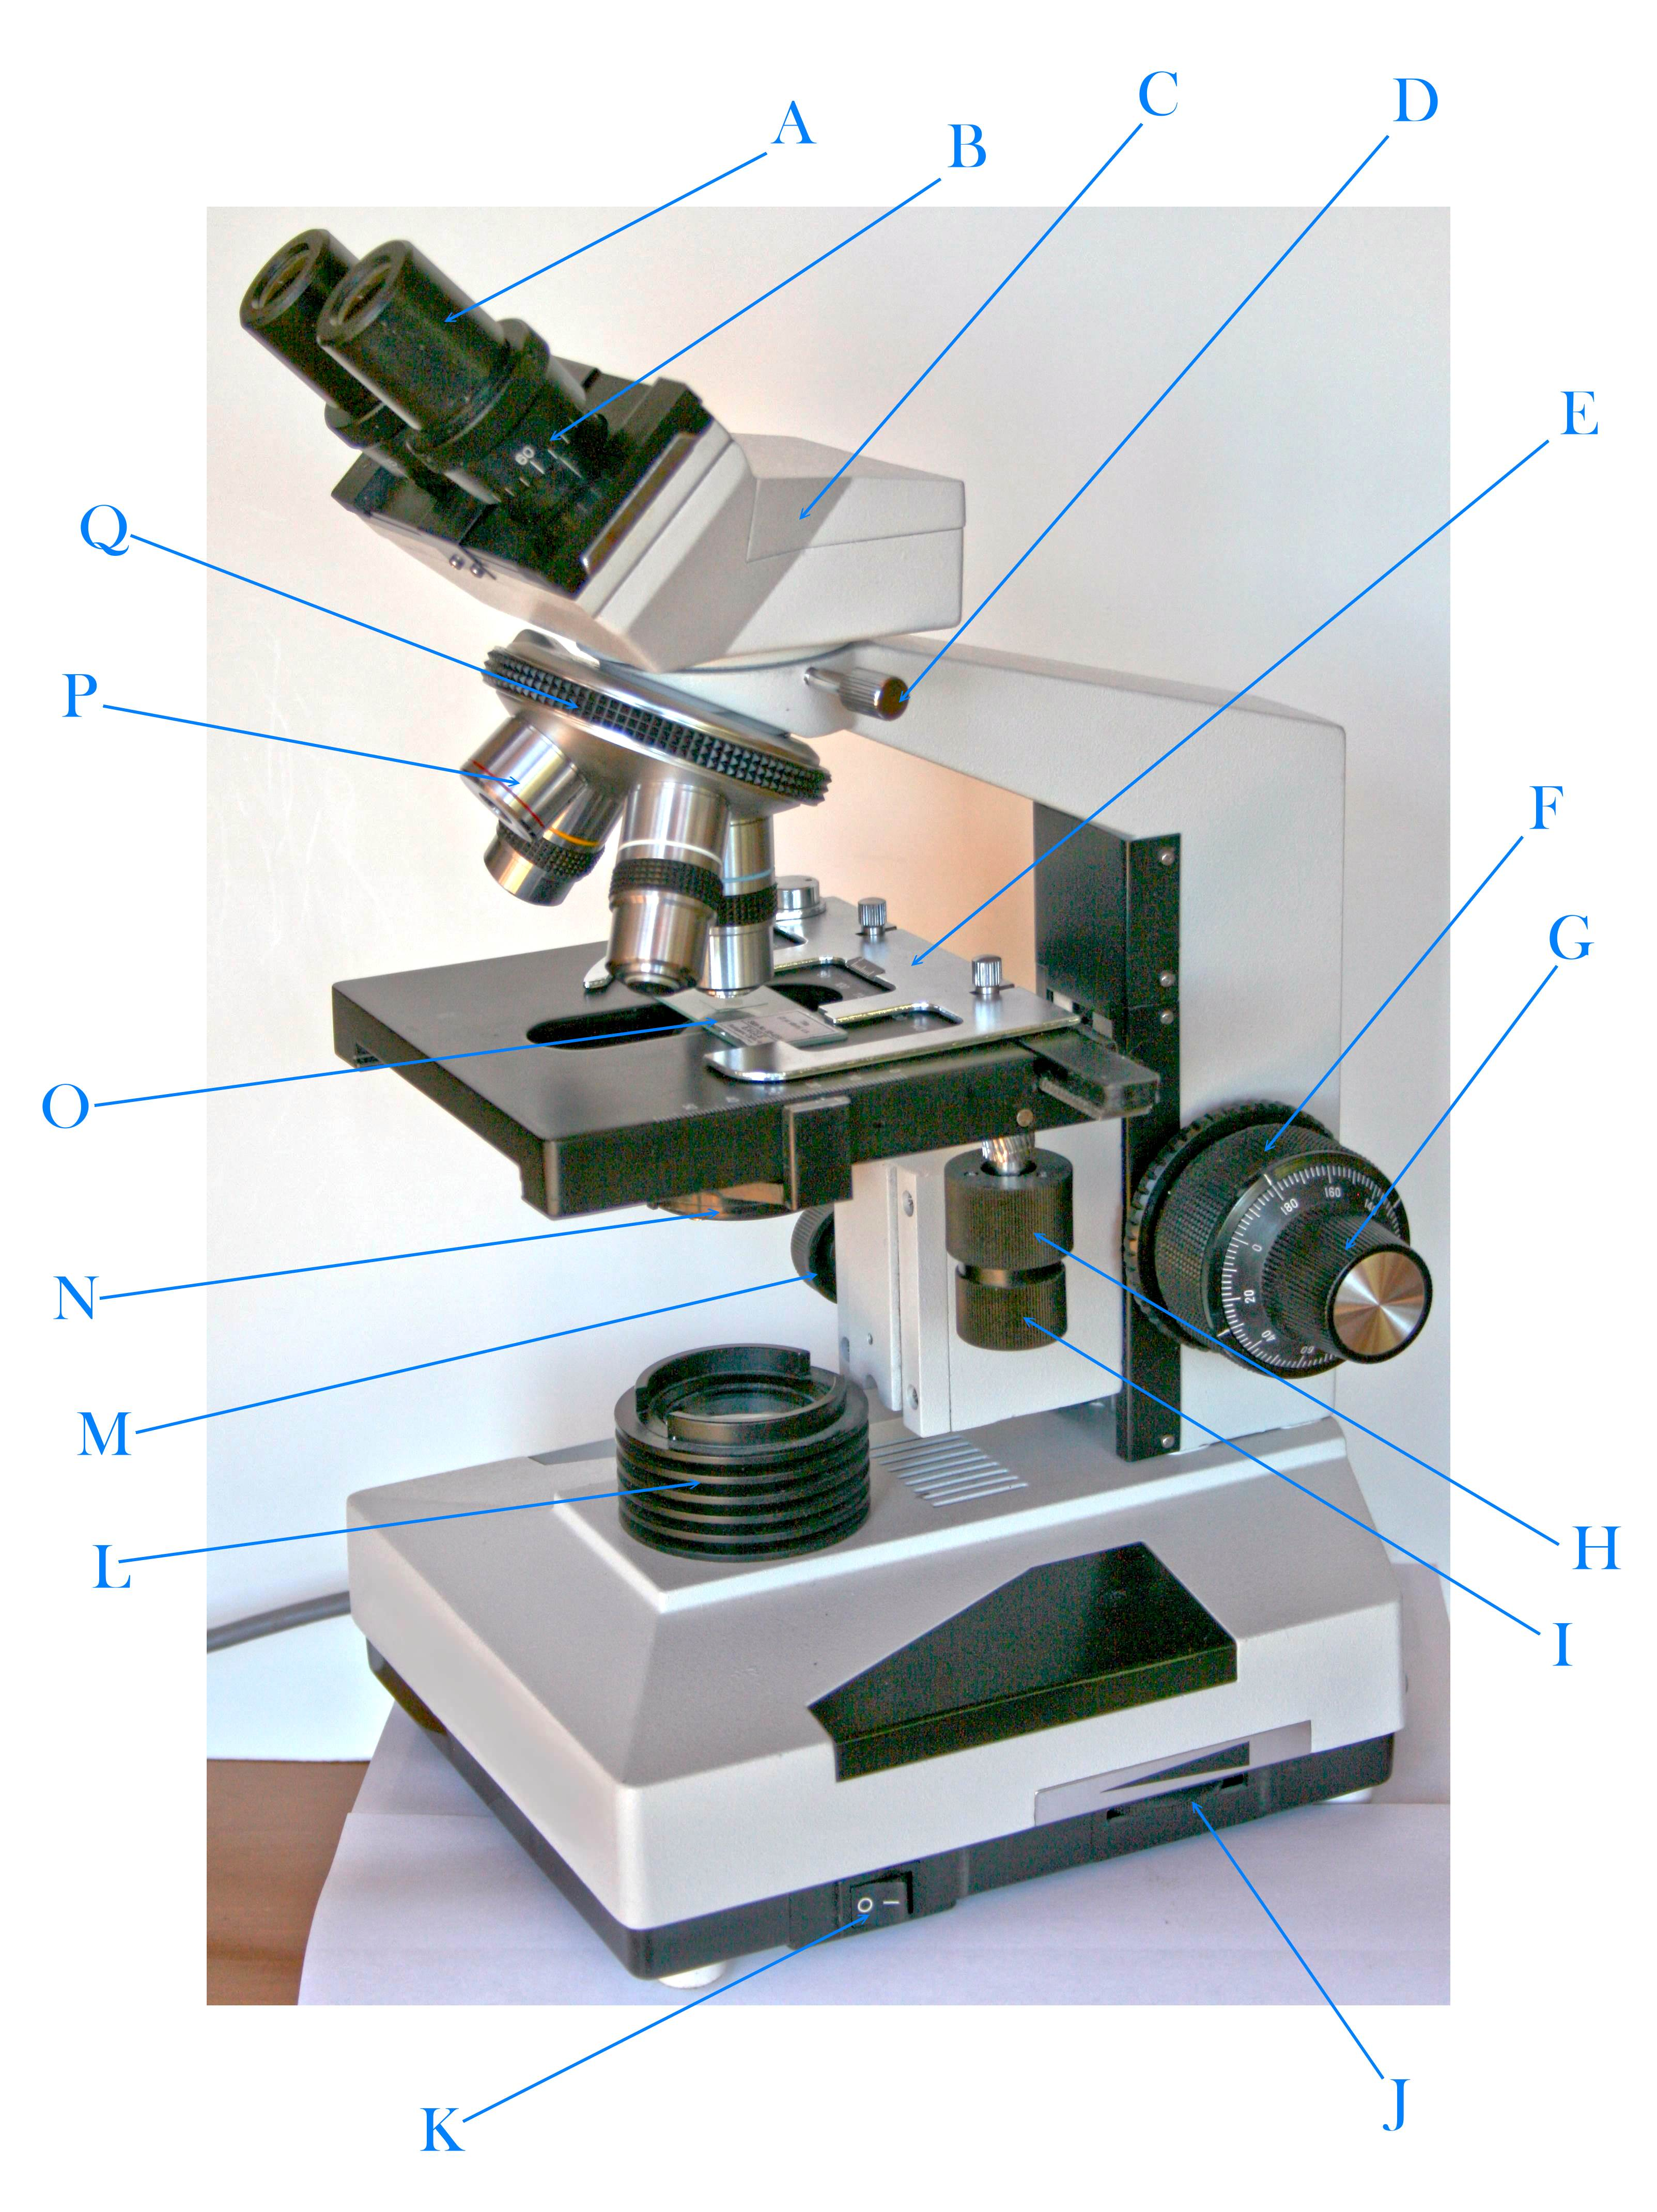 Labeled view of a microscope